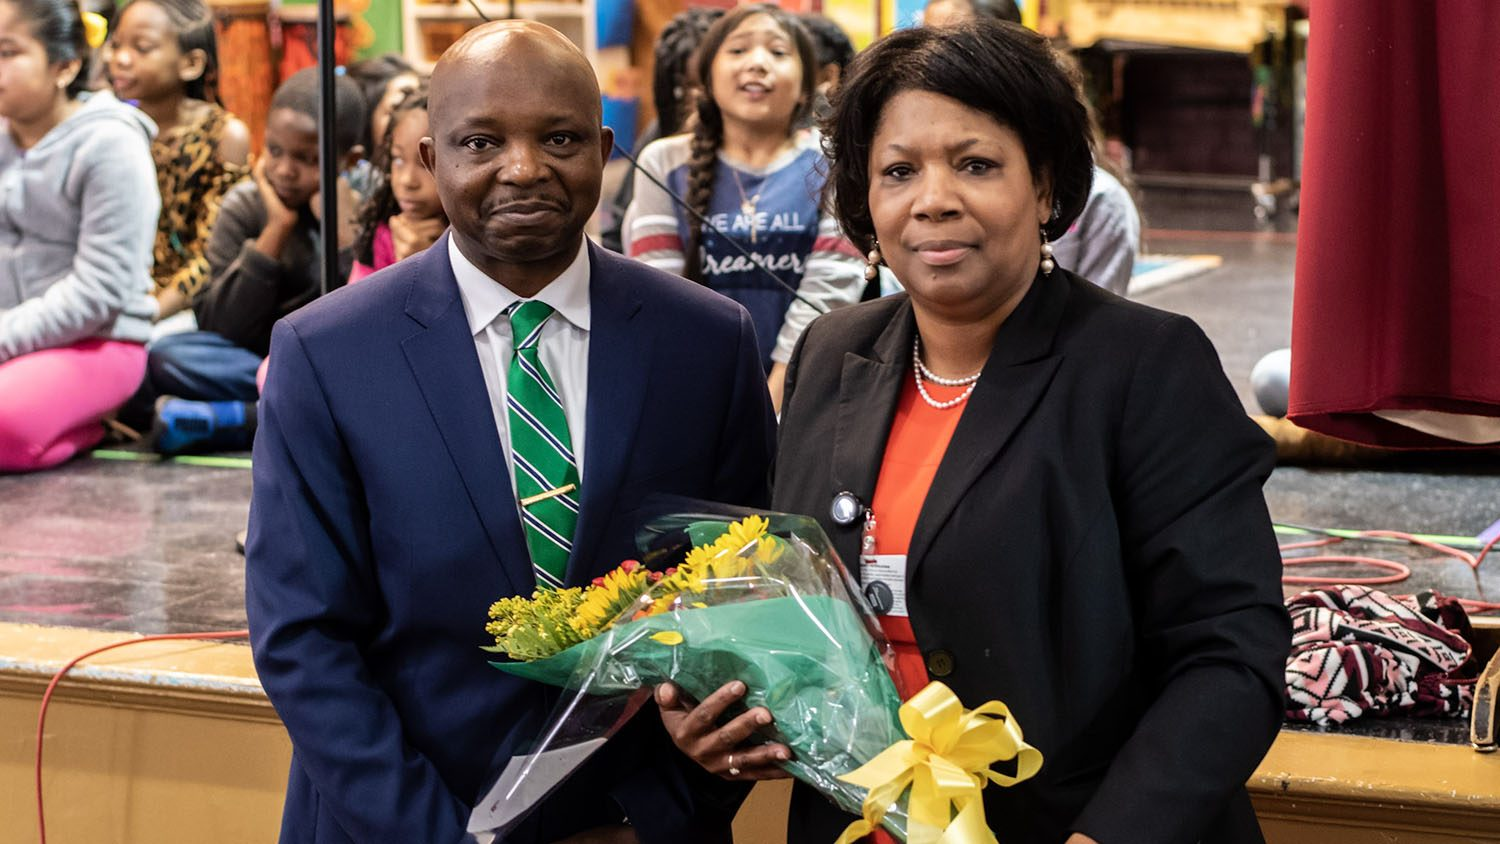 Kimberly Ferrell, Durham County Principal of the Year